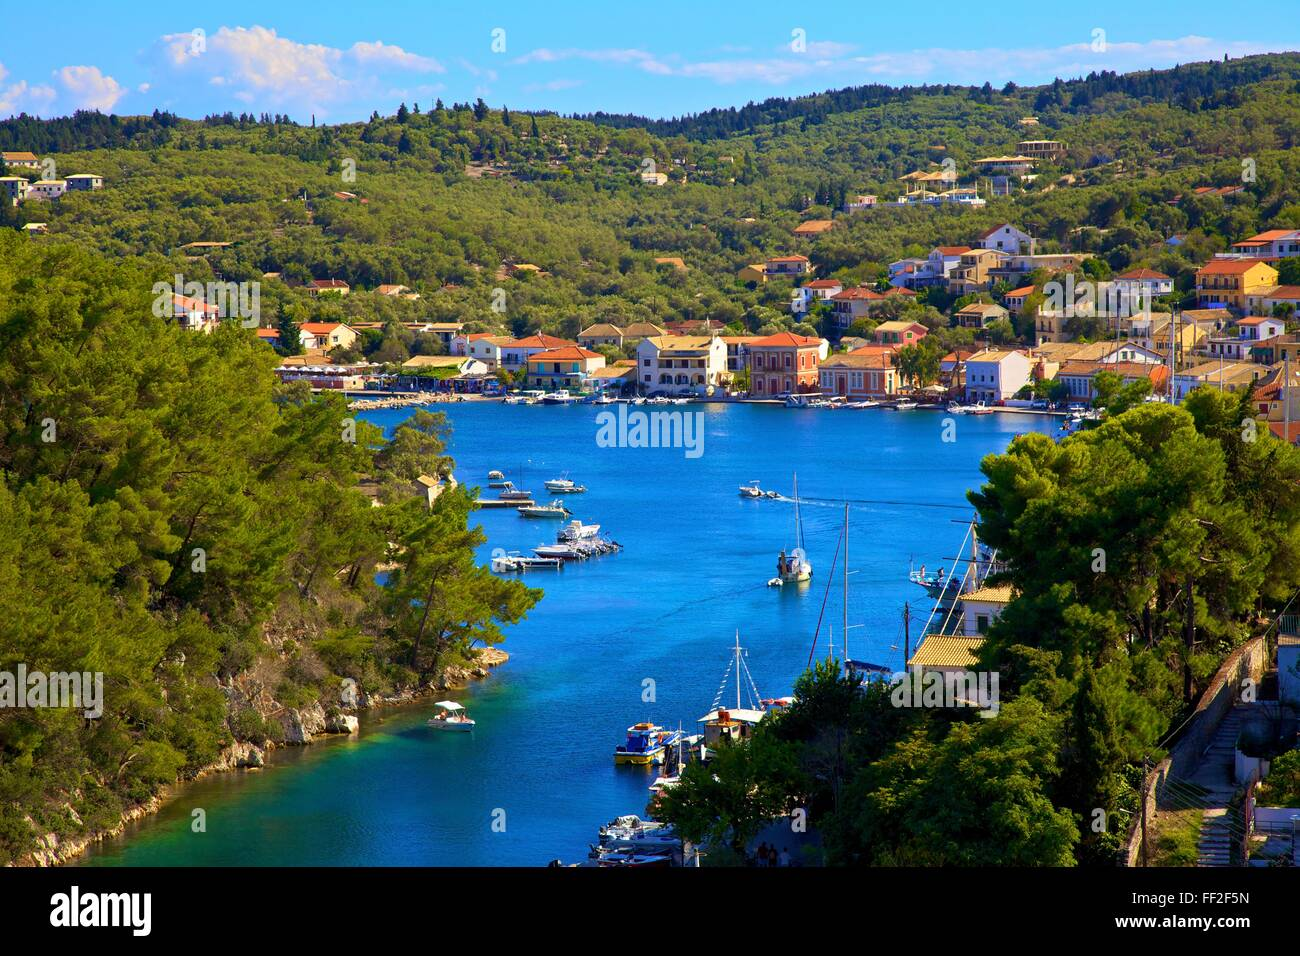 Gaios Harbour, Paxos, The Ionian IsRMands, Greek IsRMands, Greece, Europe - Stock Image